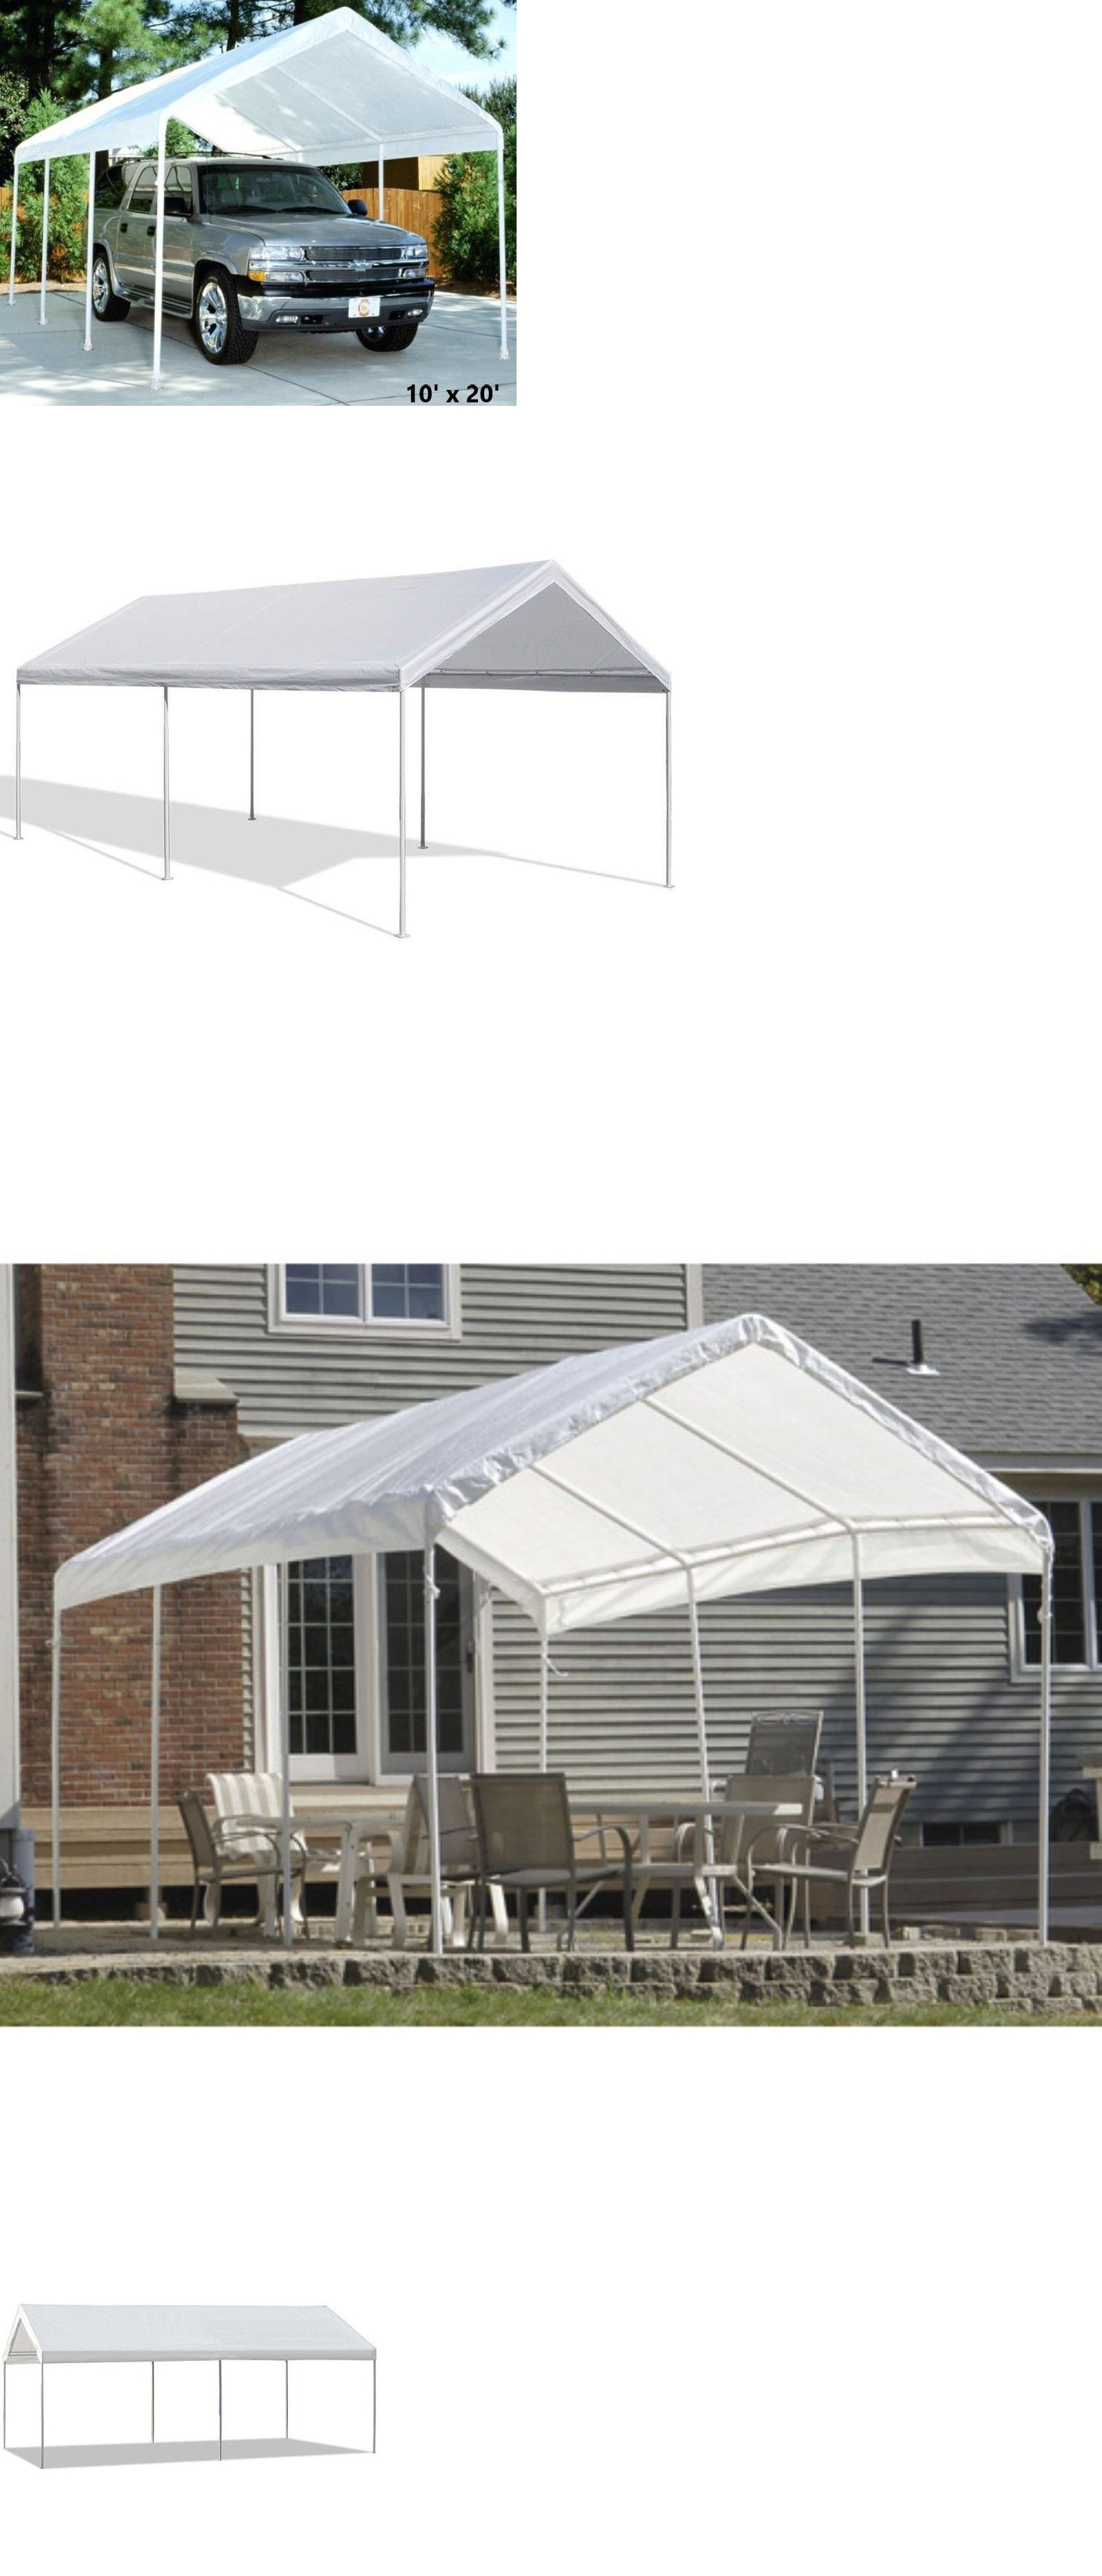 White Garage Canopy Tent 10x20 Ft Steel Carport Portable Car Shelter Side Valanc Ebay Canopy Tent Car Shelter Steel Carports